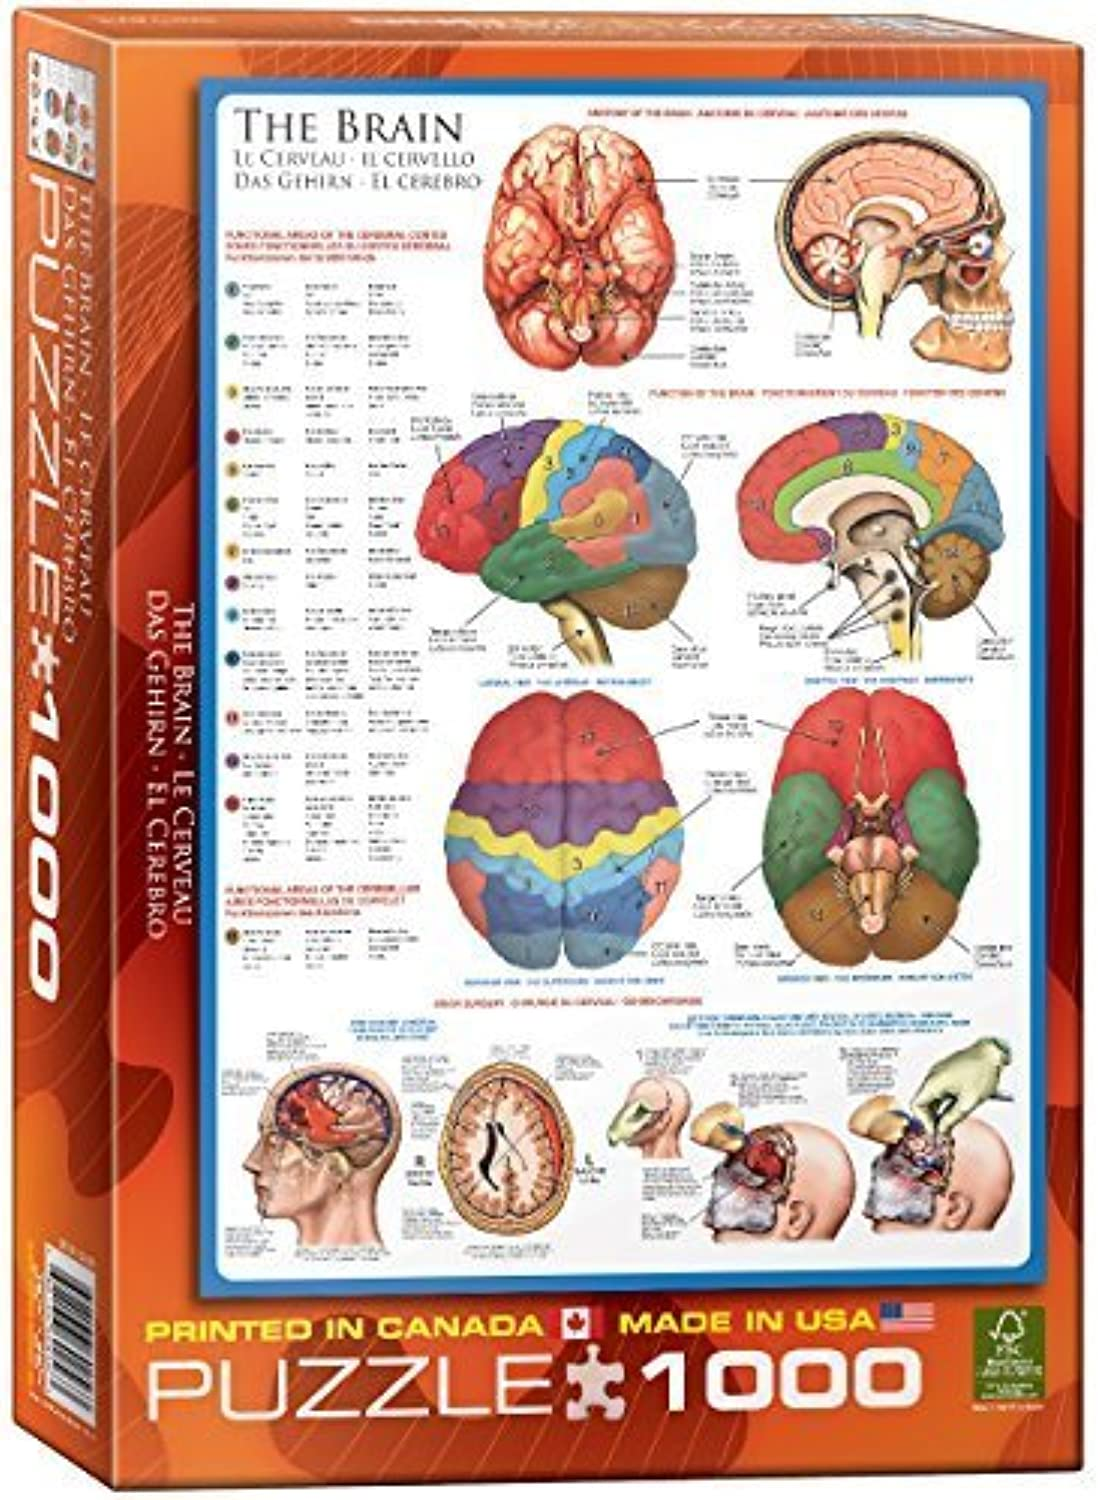 Eurographics the Brain Puzzle (1000 Pieces) by Eurographics